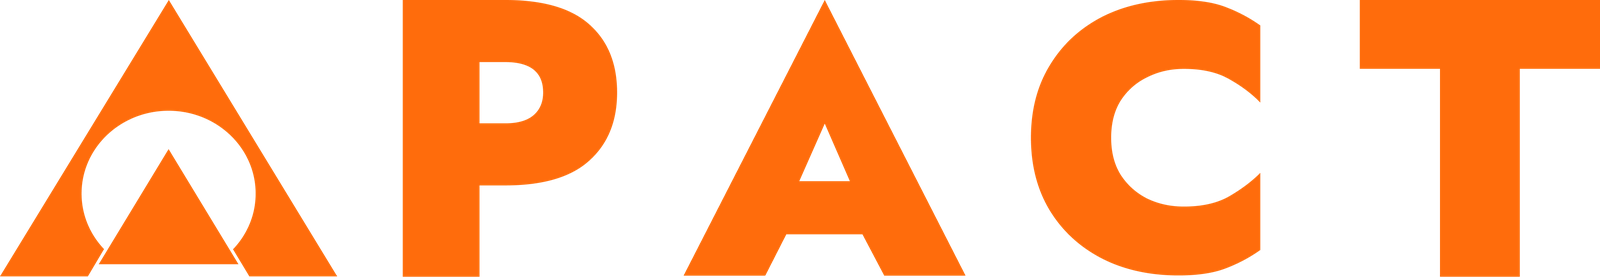 Orange APACT ERG logo